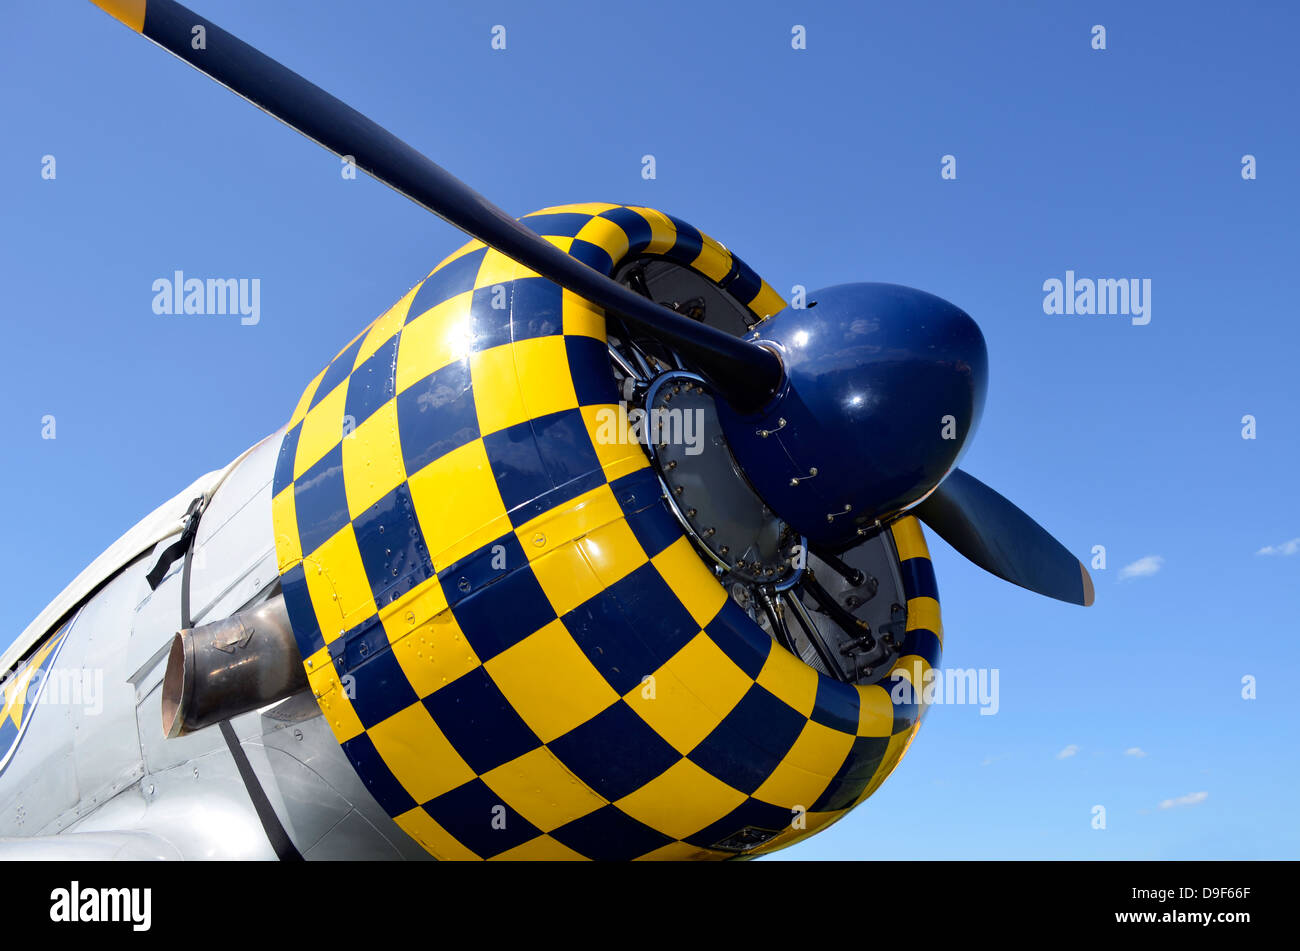 Close-up view of the propeller on an AT-6F Texan aircraft. - Stock Image